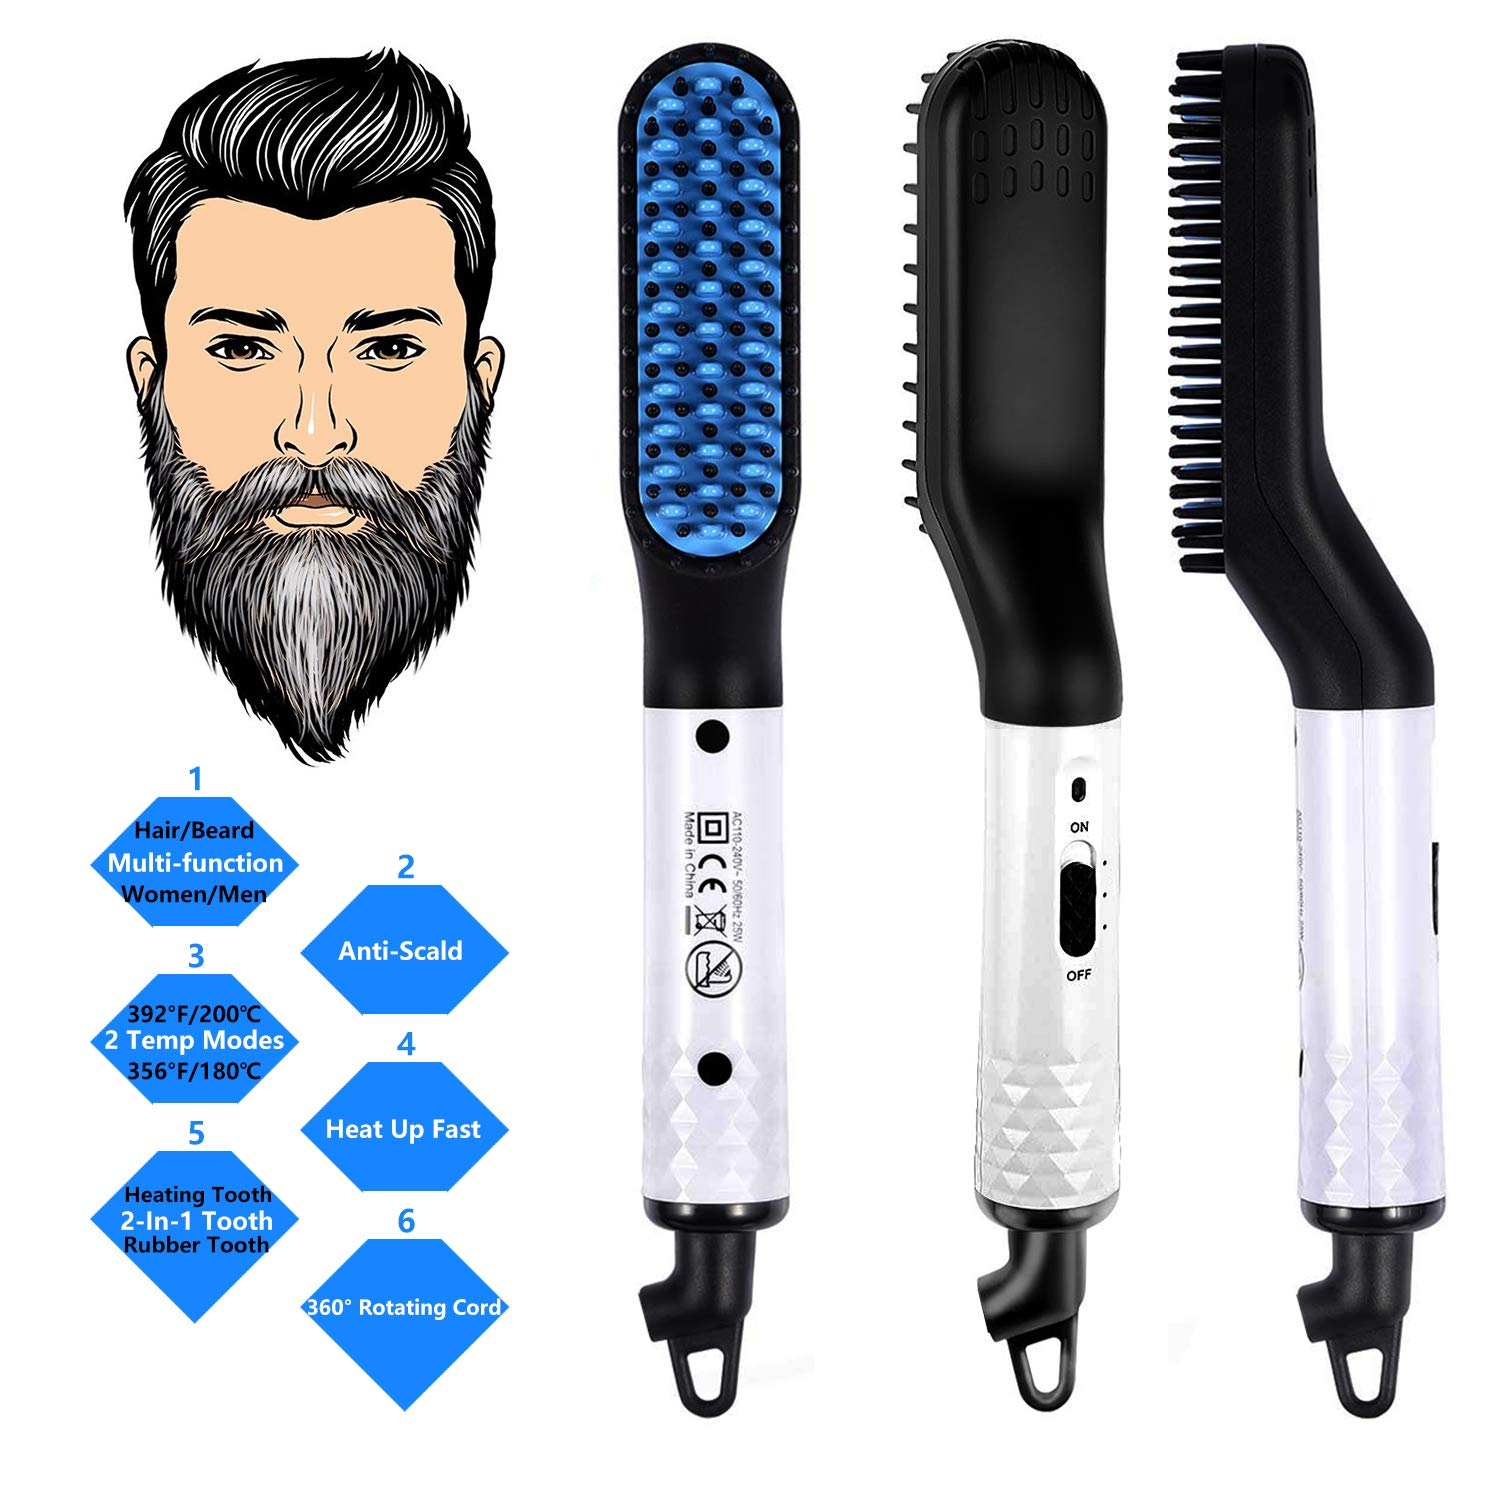 Beard Straightener for Men, Ejoy Electric Beard Straightening Brush Hot Beard Comb with 2 Temp Modes 360 Degree Rotating Cord Fast Heat up Beard Straightener Comb for Mens Short and Long Beard Hair